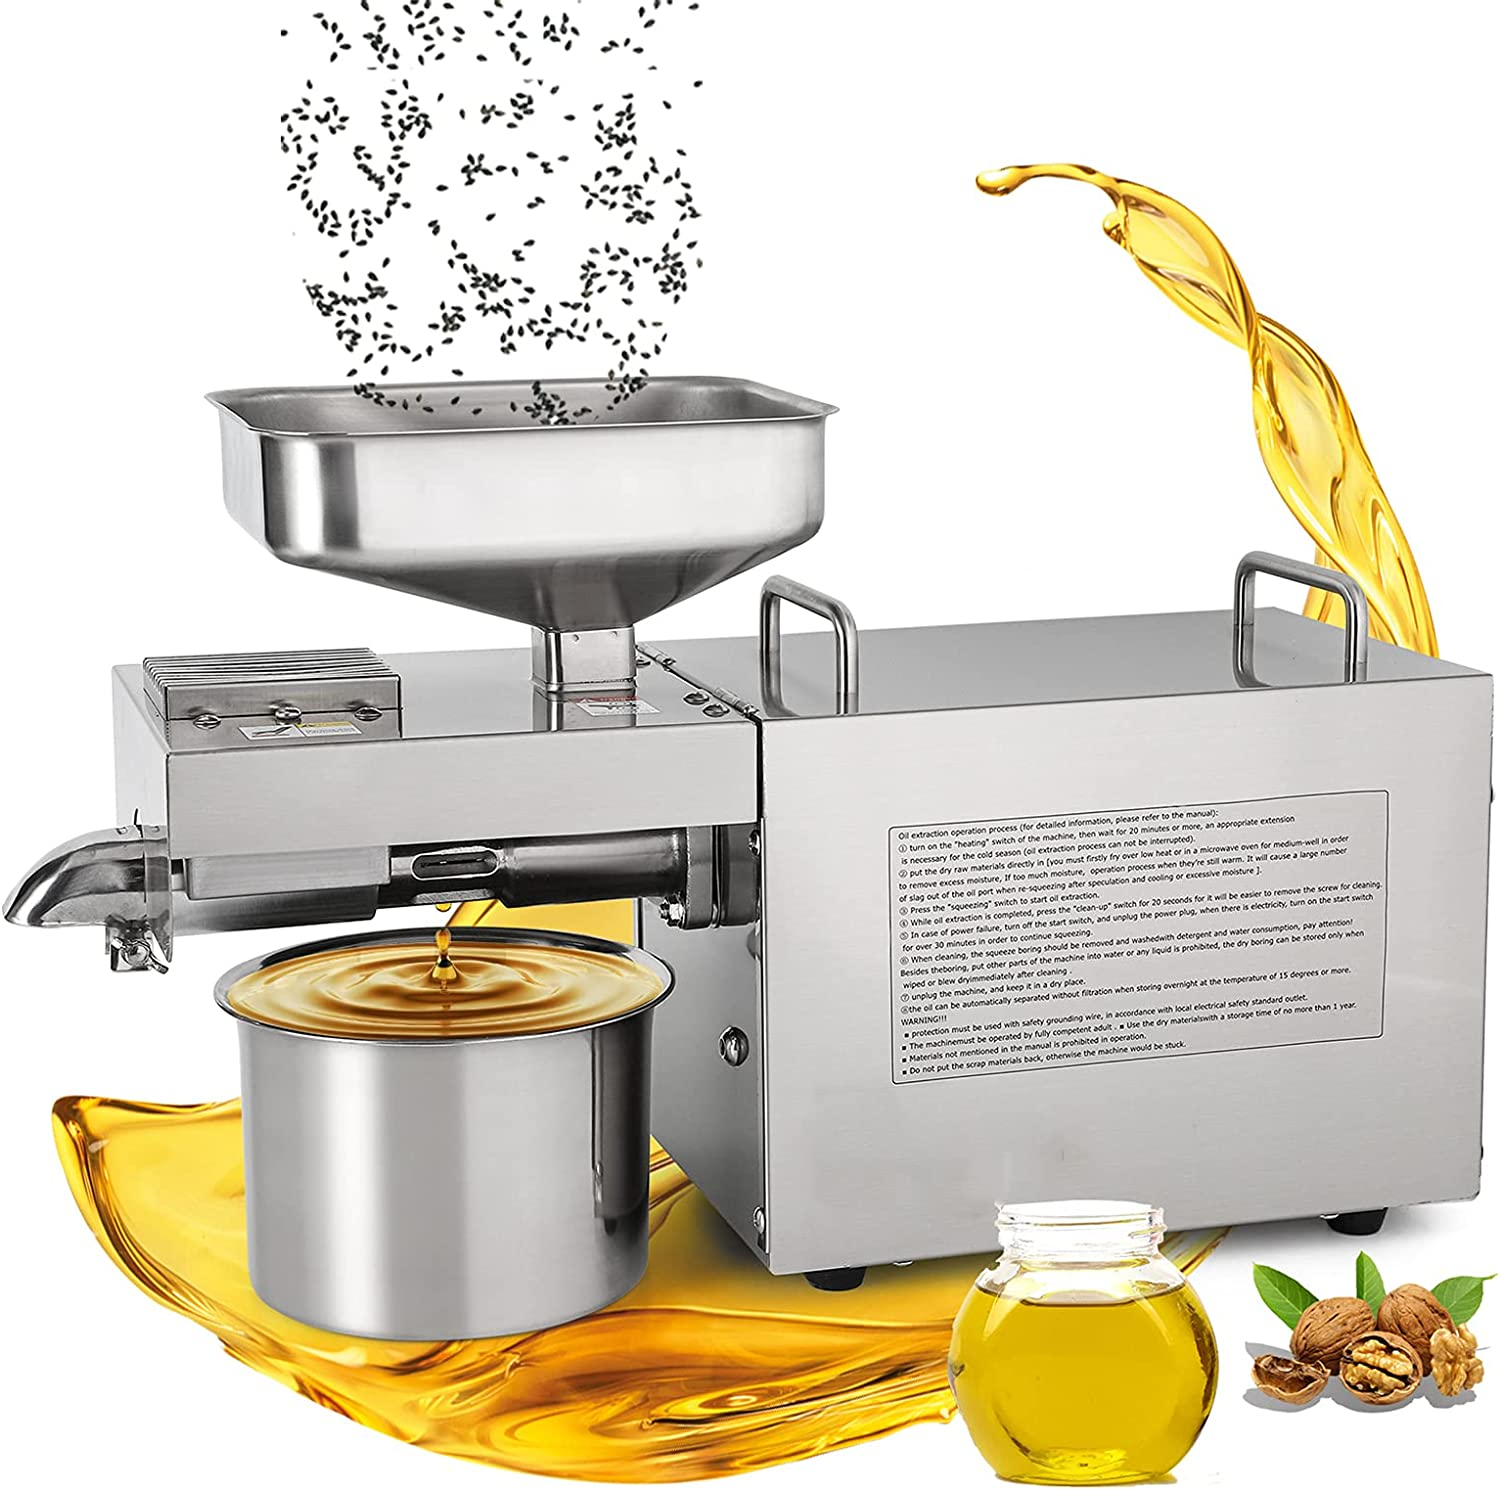 Moongiantgo Oil Press Machine 1500W Commercial Automatic Oil Extractor Presser 24H Continuous Work Hot Cold Oil Maker Stainless Steel Expeller for Seed Almond Coconut Walnut Sesame Castor Peanut